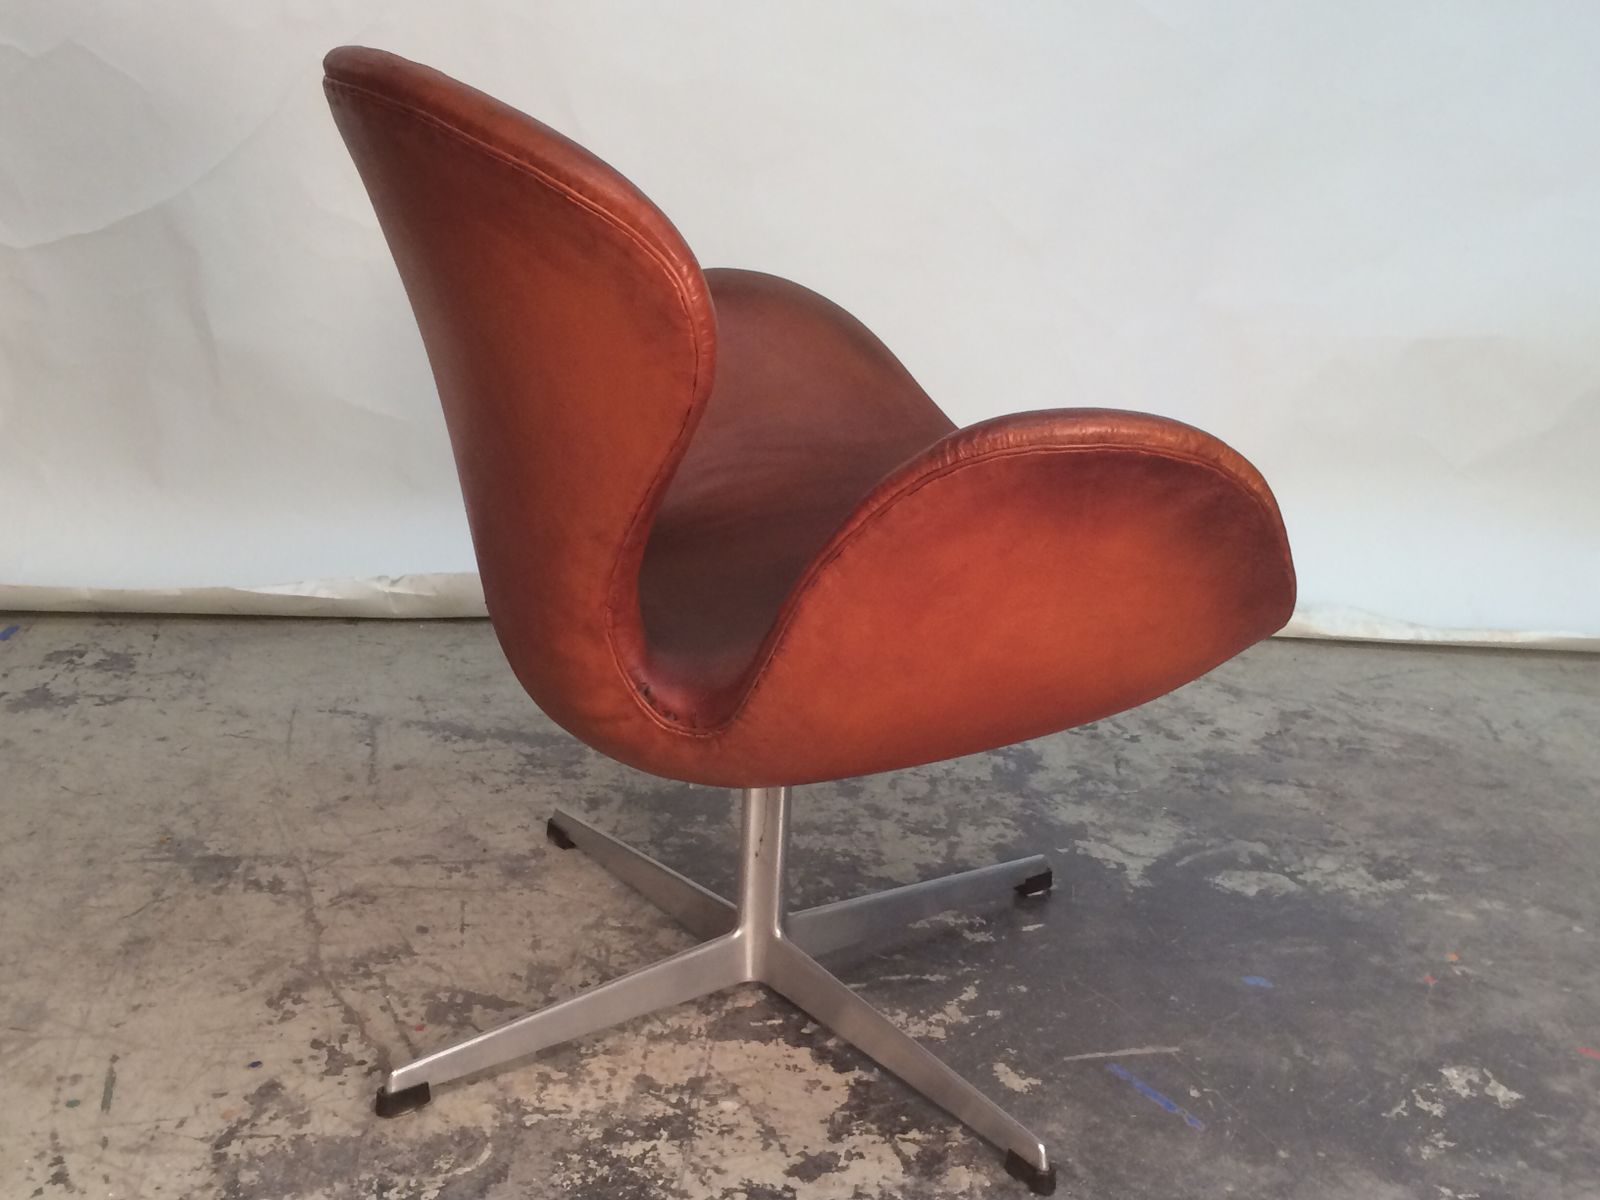 swan chair by arne jacobsen for fritz hansen 1960 for sale at pamono. Black Bedroom Furniture Sets. Home Design Ideas